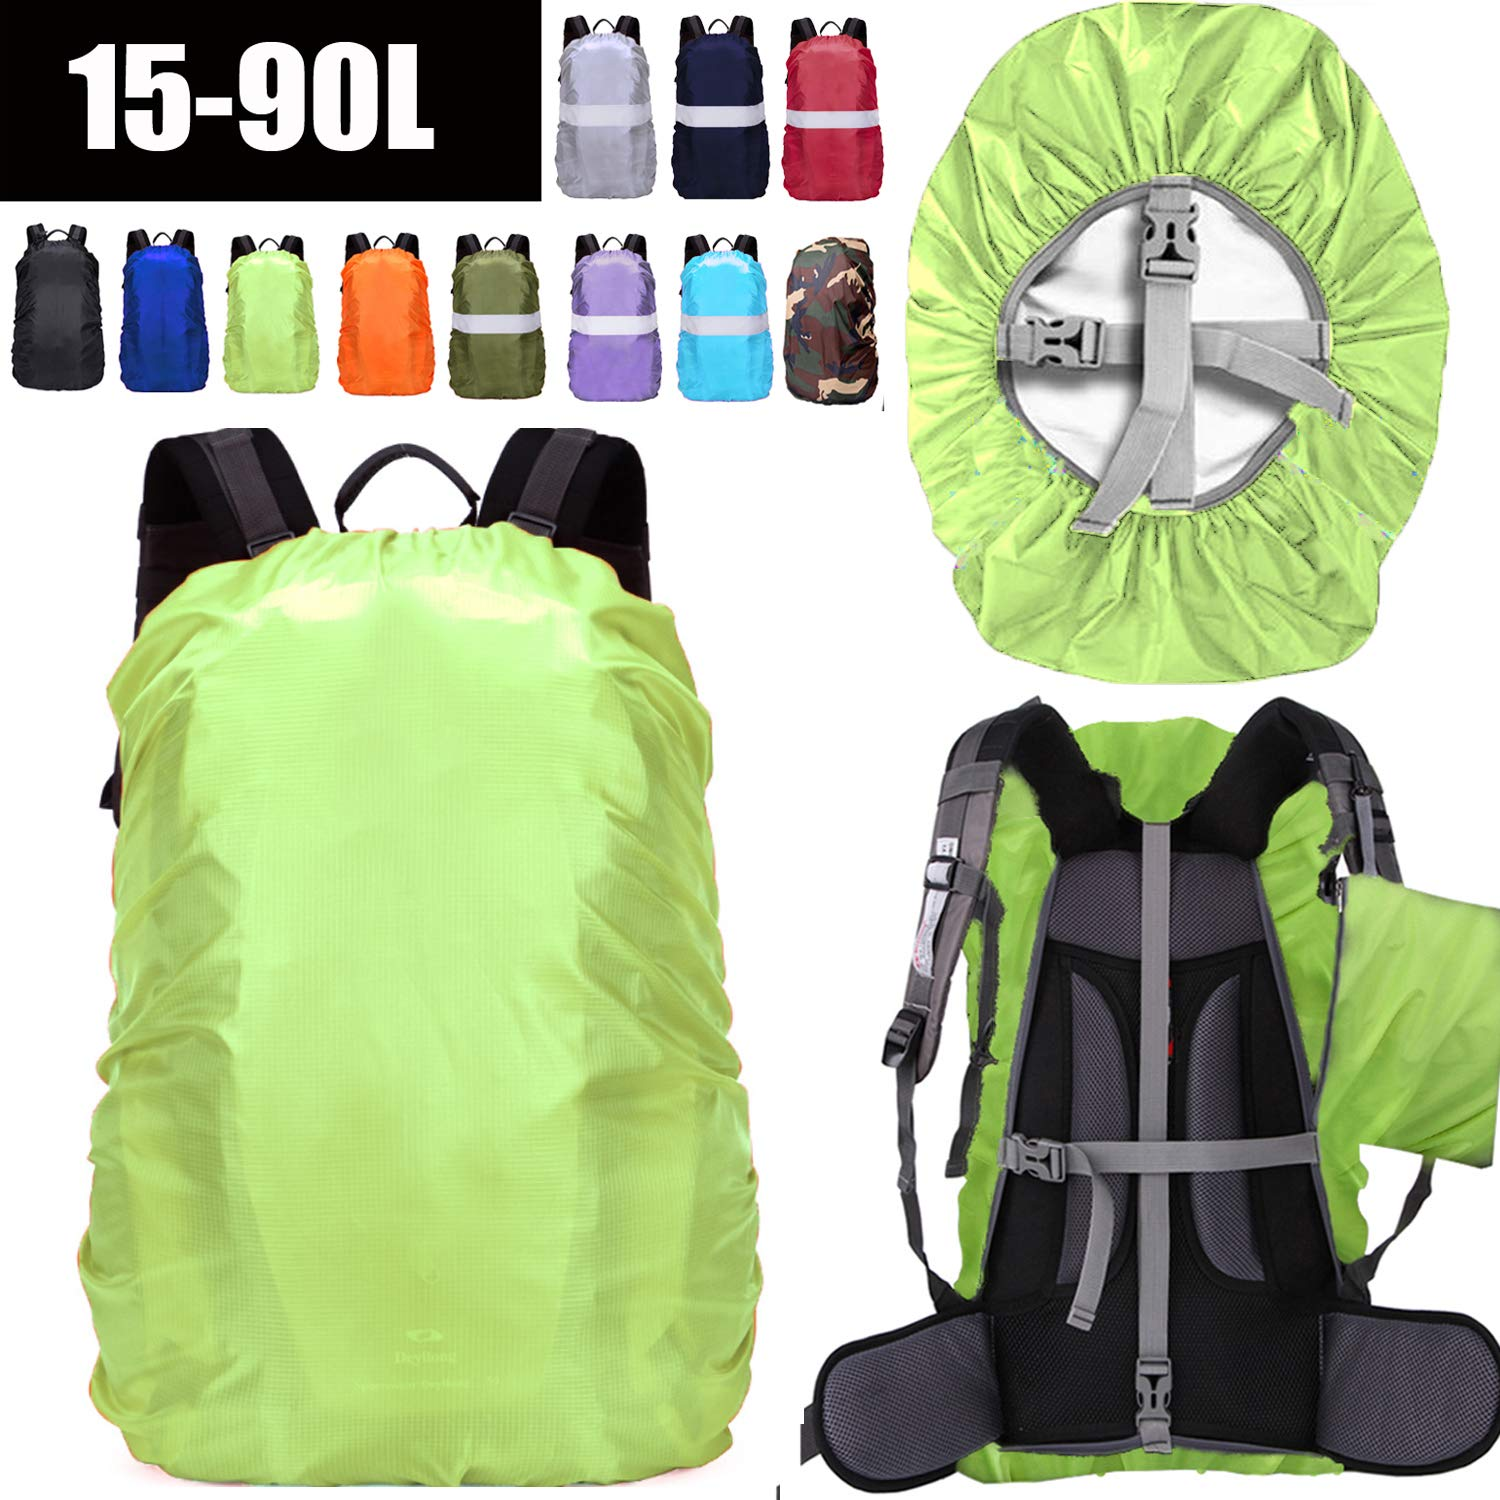 ZM-SPORTS 15-90L Upgraded Waterproof Backpack Rain Cover,with Vertical Adjustable Fixed Strap Avoid to Falling,Gift with Portable Storage Pack (Neon Green, XL(for 50-65L Backpack) by ZM-SPORTS